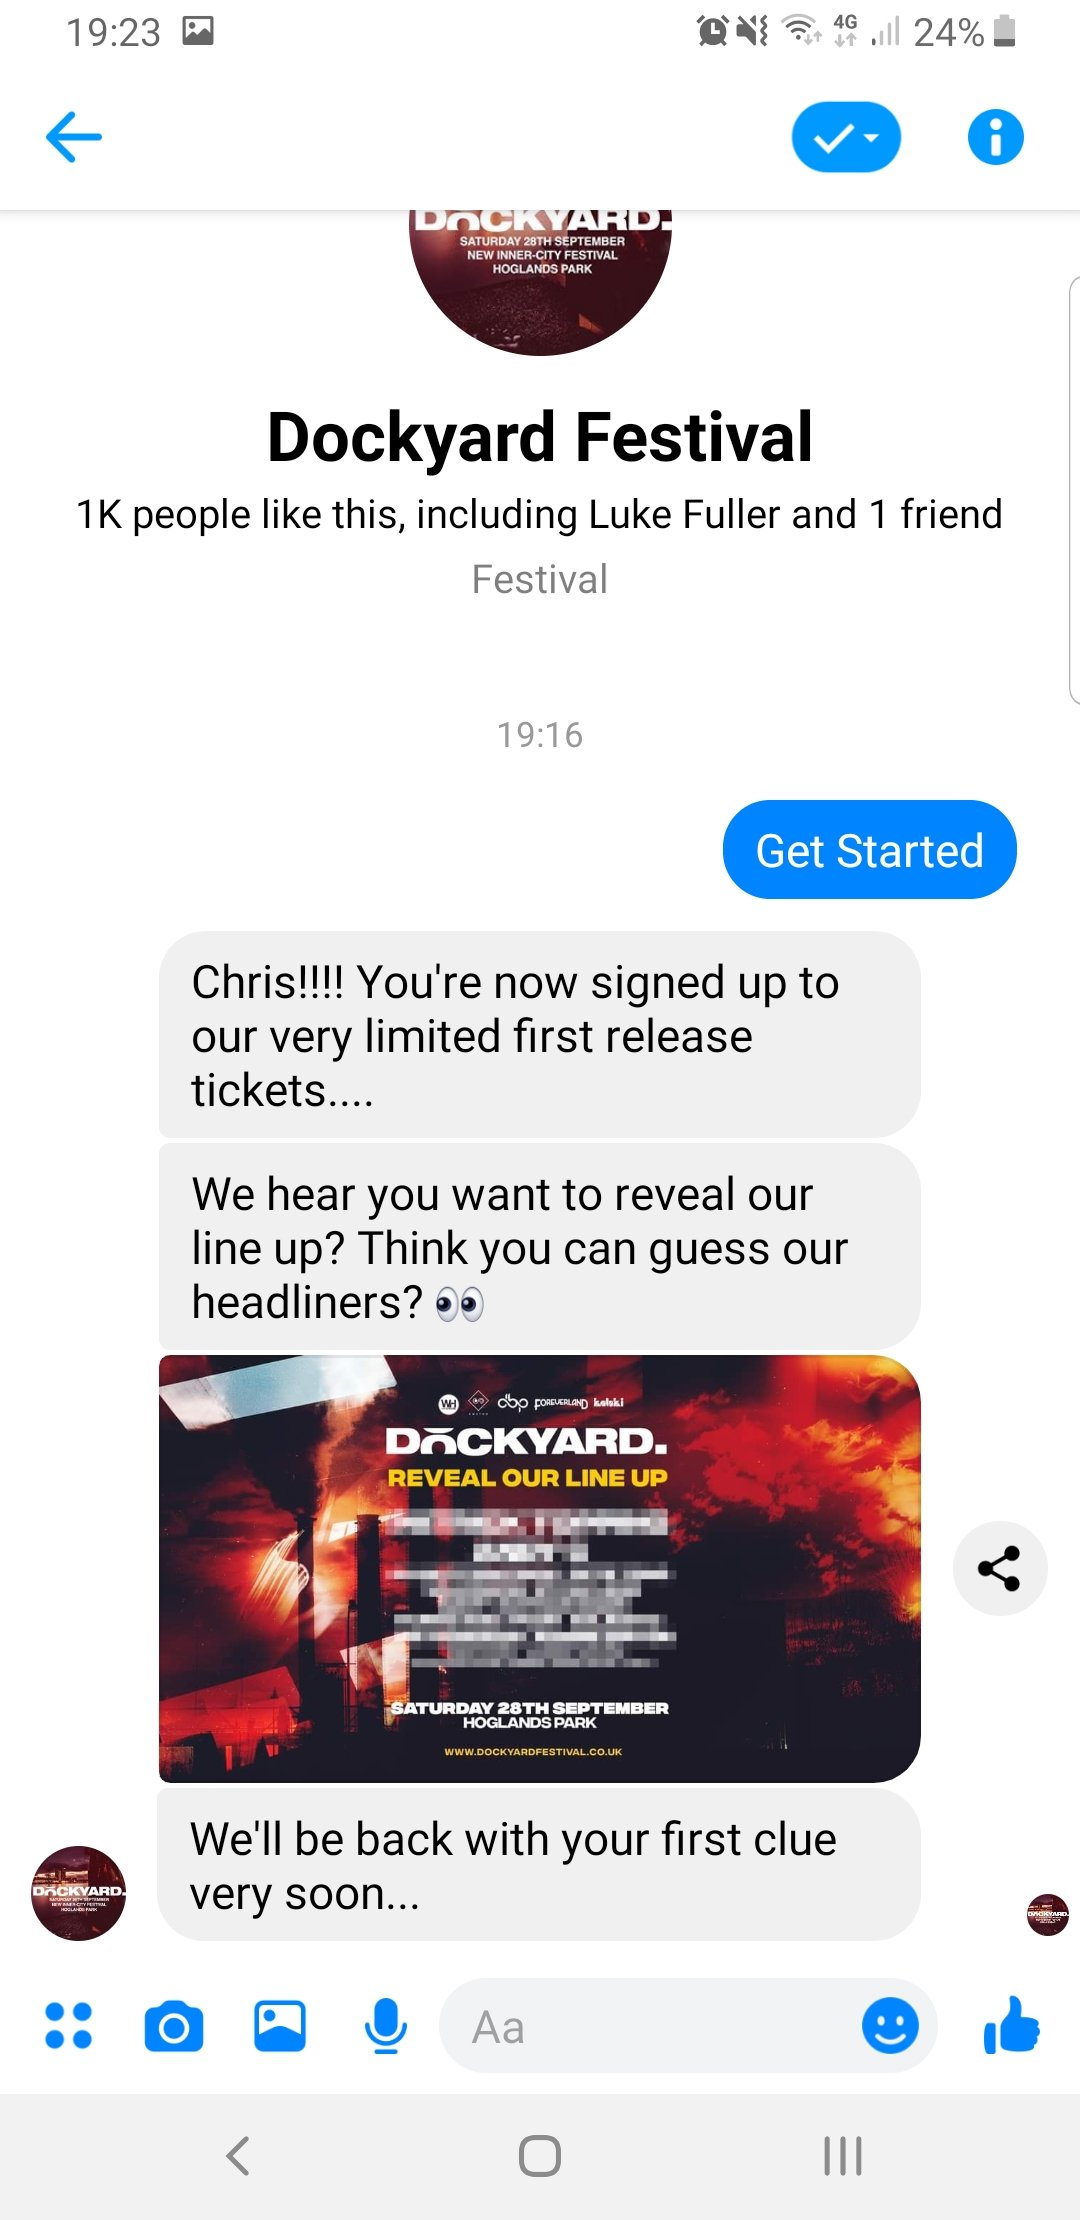 New UK Dockyard Festival announced, in a really interesting way... 3